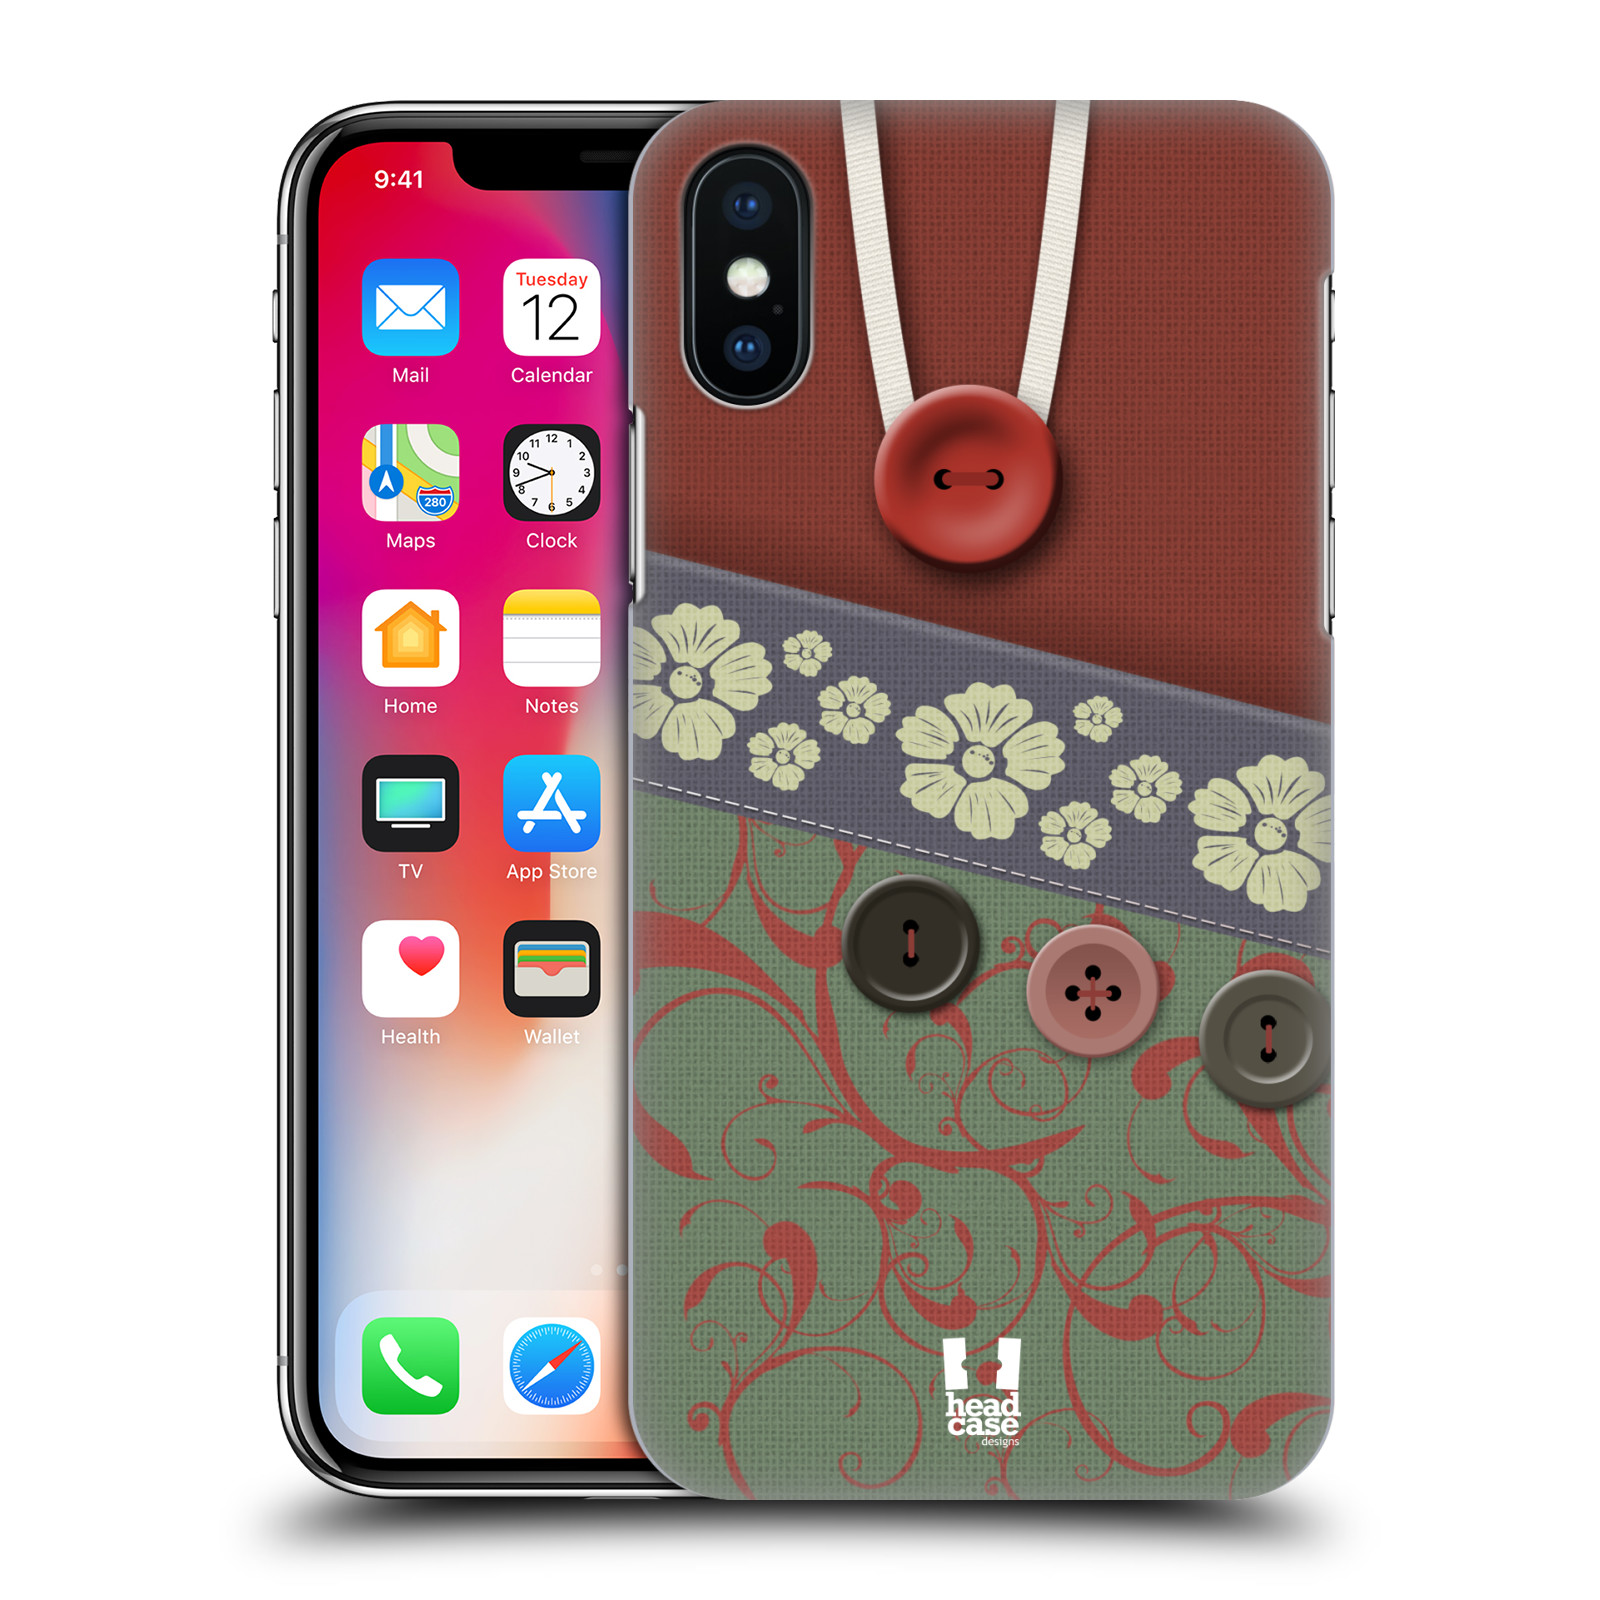 HEAD-CASE-DESIGNS-BORSA-CON-BOTTONE-COVER-RETRO-RIGIDA-PER-APPLE-iPHONE-TELEFONI